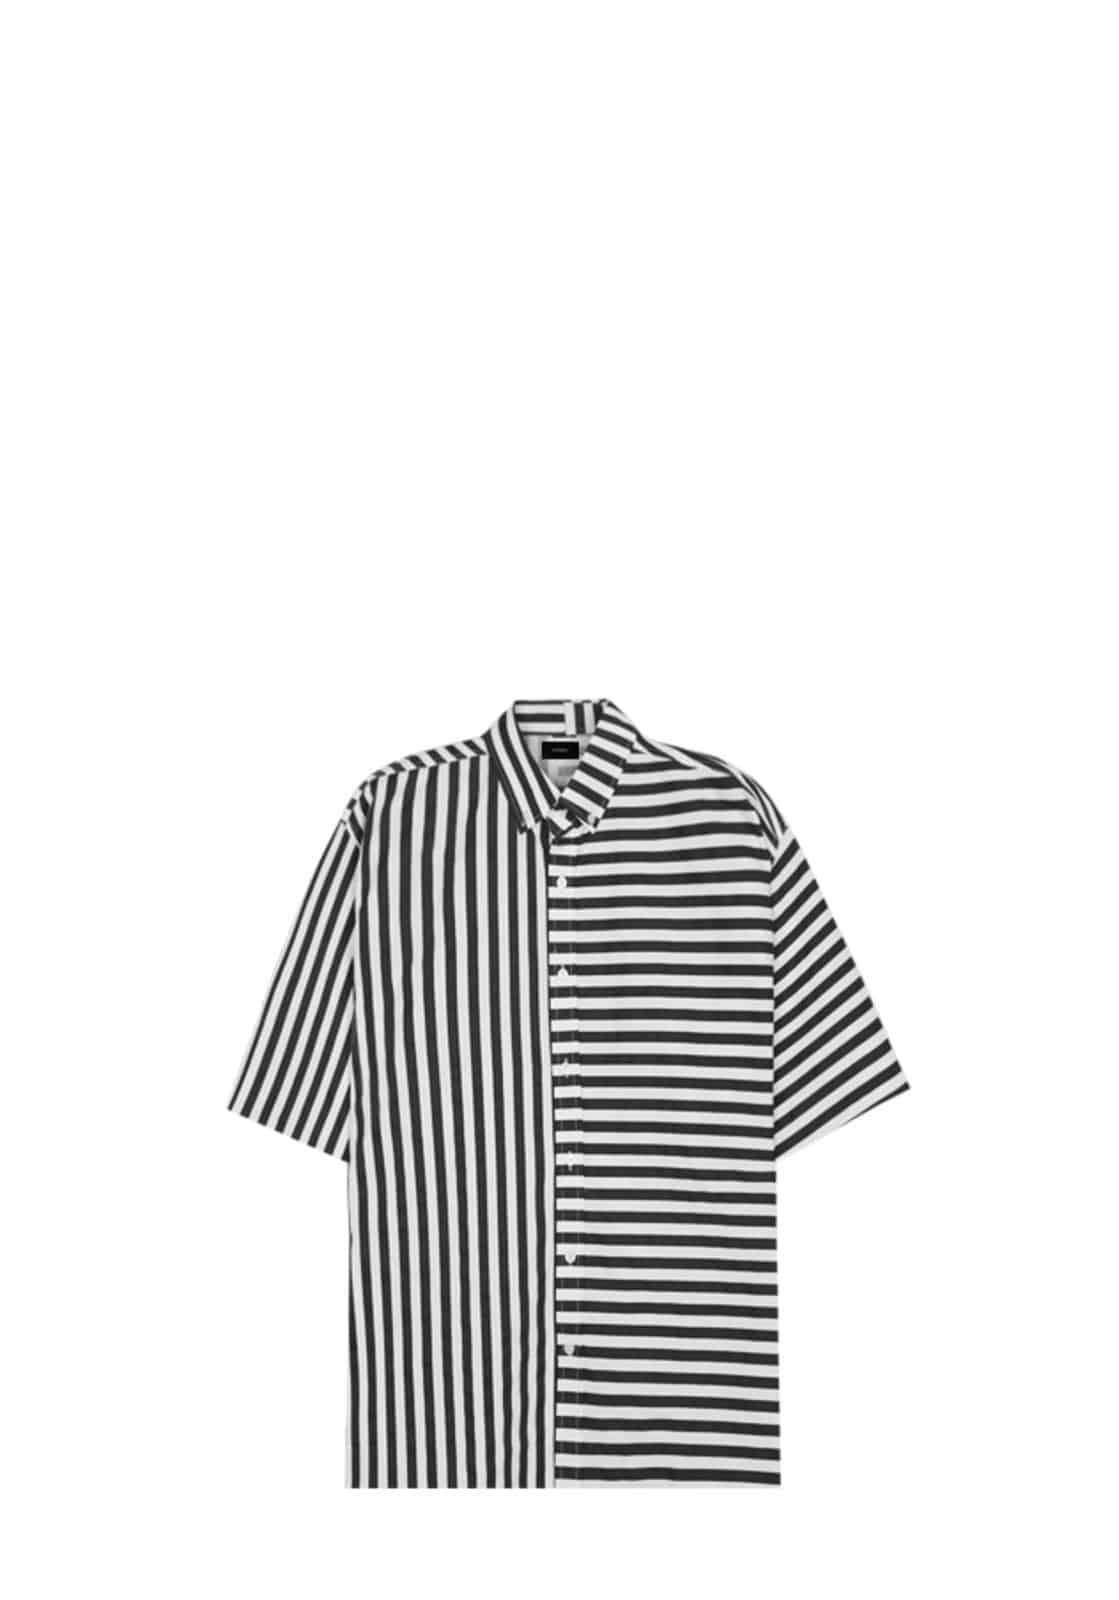 V421 MARINE STRIPE SHIRT  BLACK